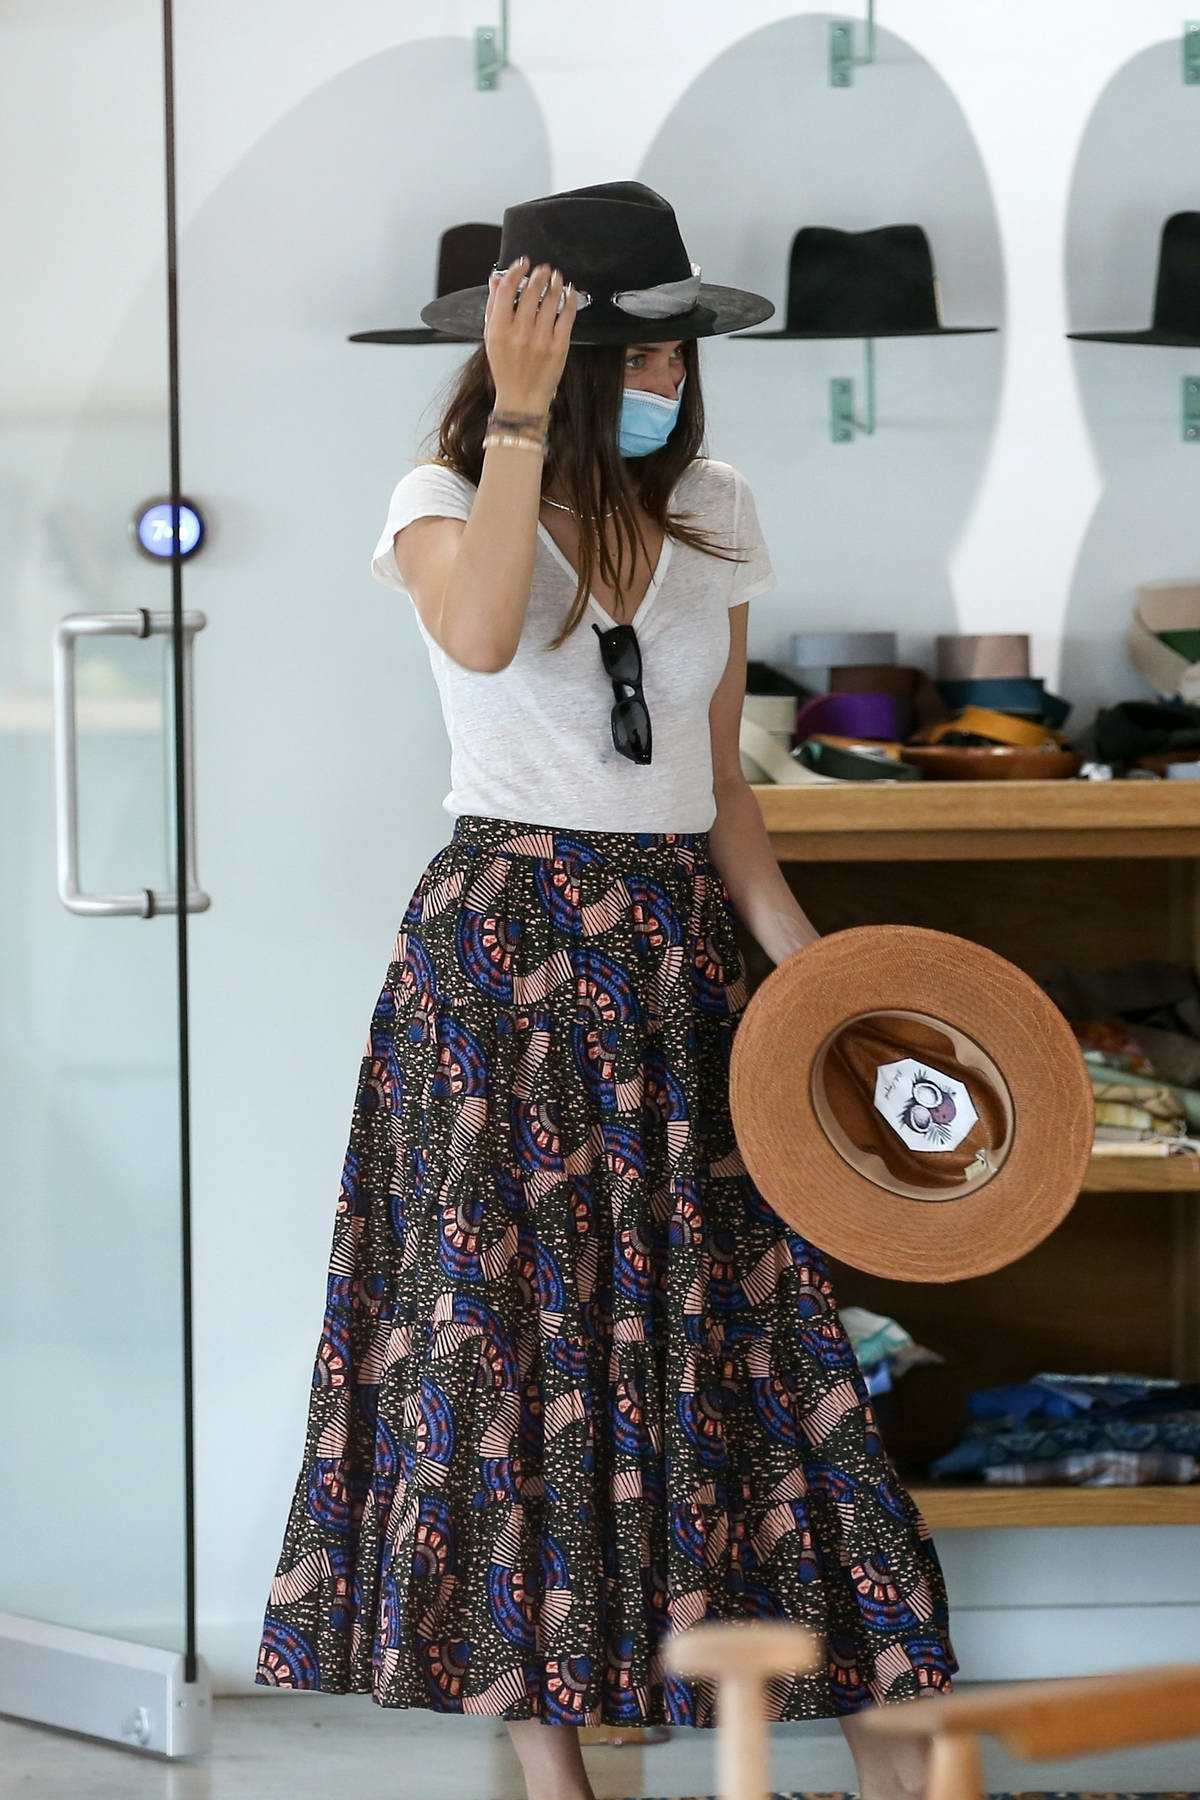 Ana de Armas and Ben Affleck shop for hats at Nick Fouquet hat shop in Venice, California